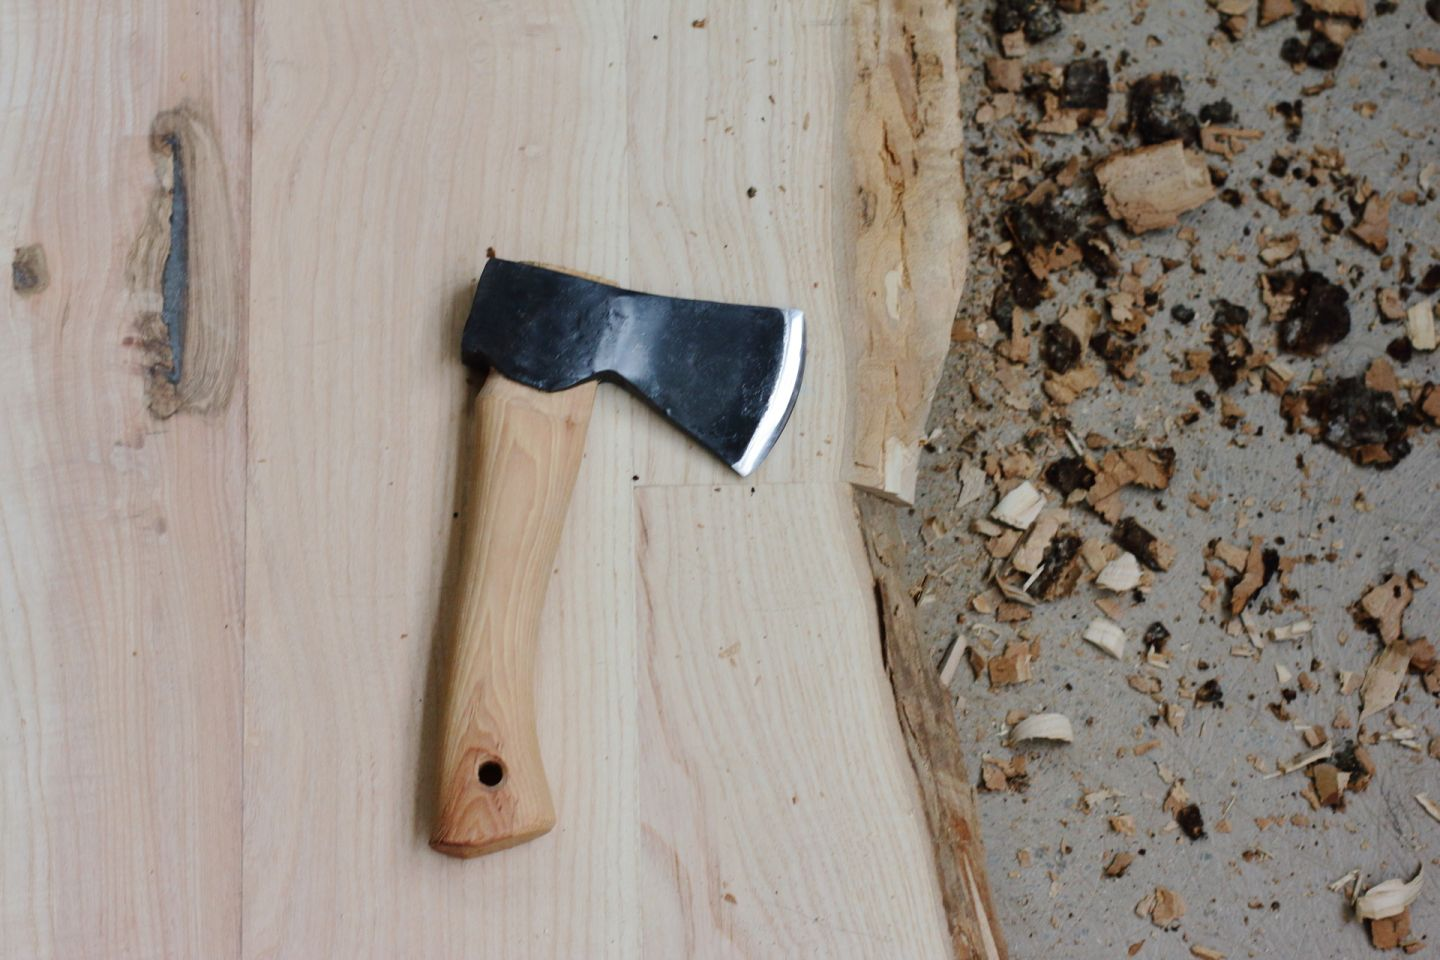 Conference table Milieudefensie - Using a hatchet to remove bark